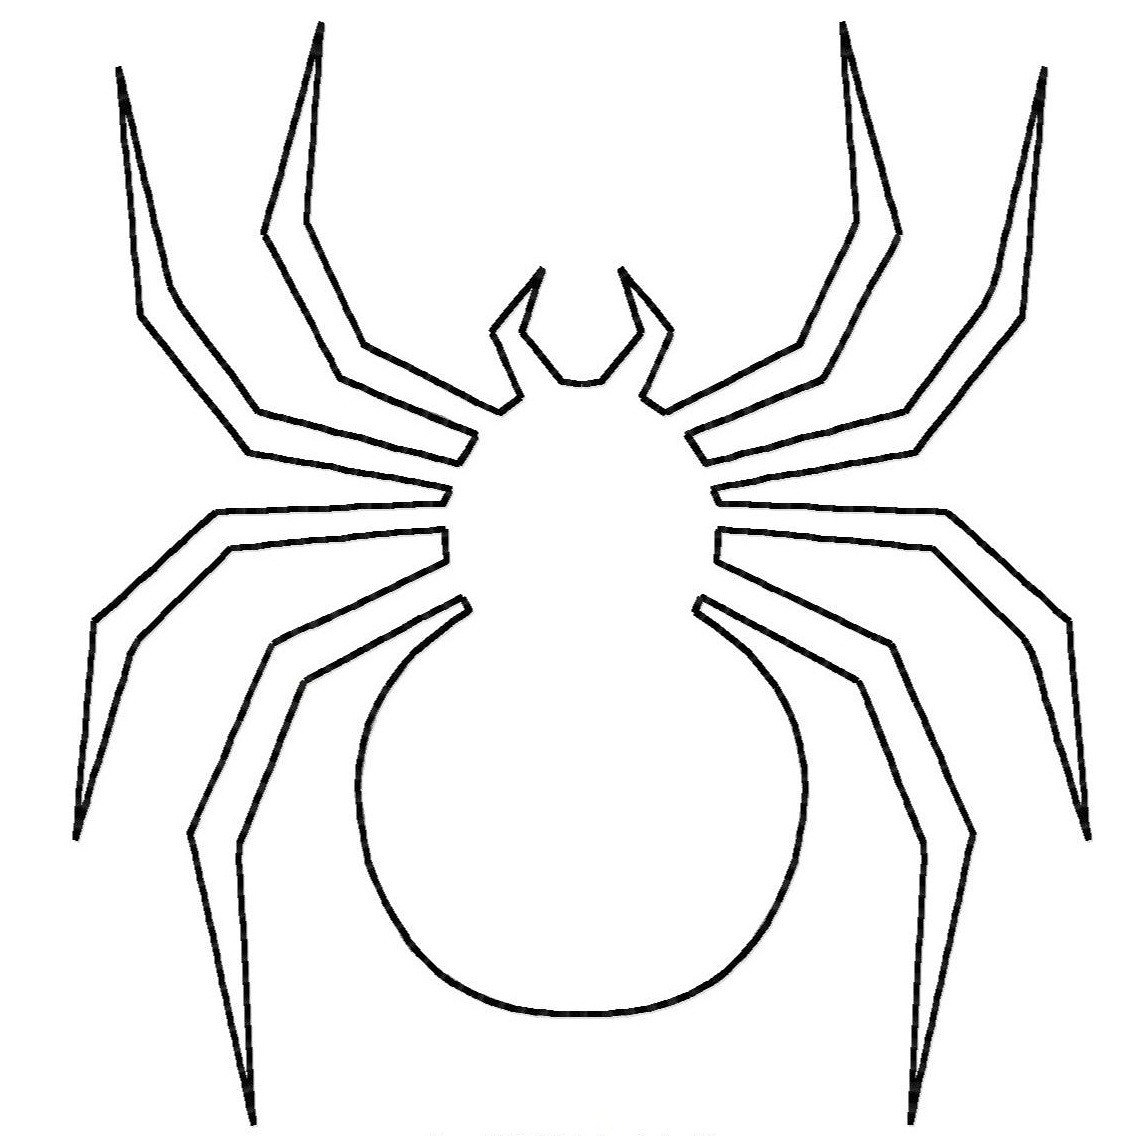 spider coloring book spider coloring pages to download and print for free coloring book spider